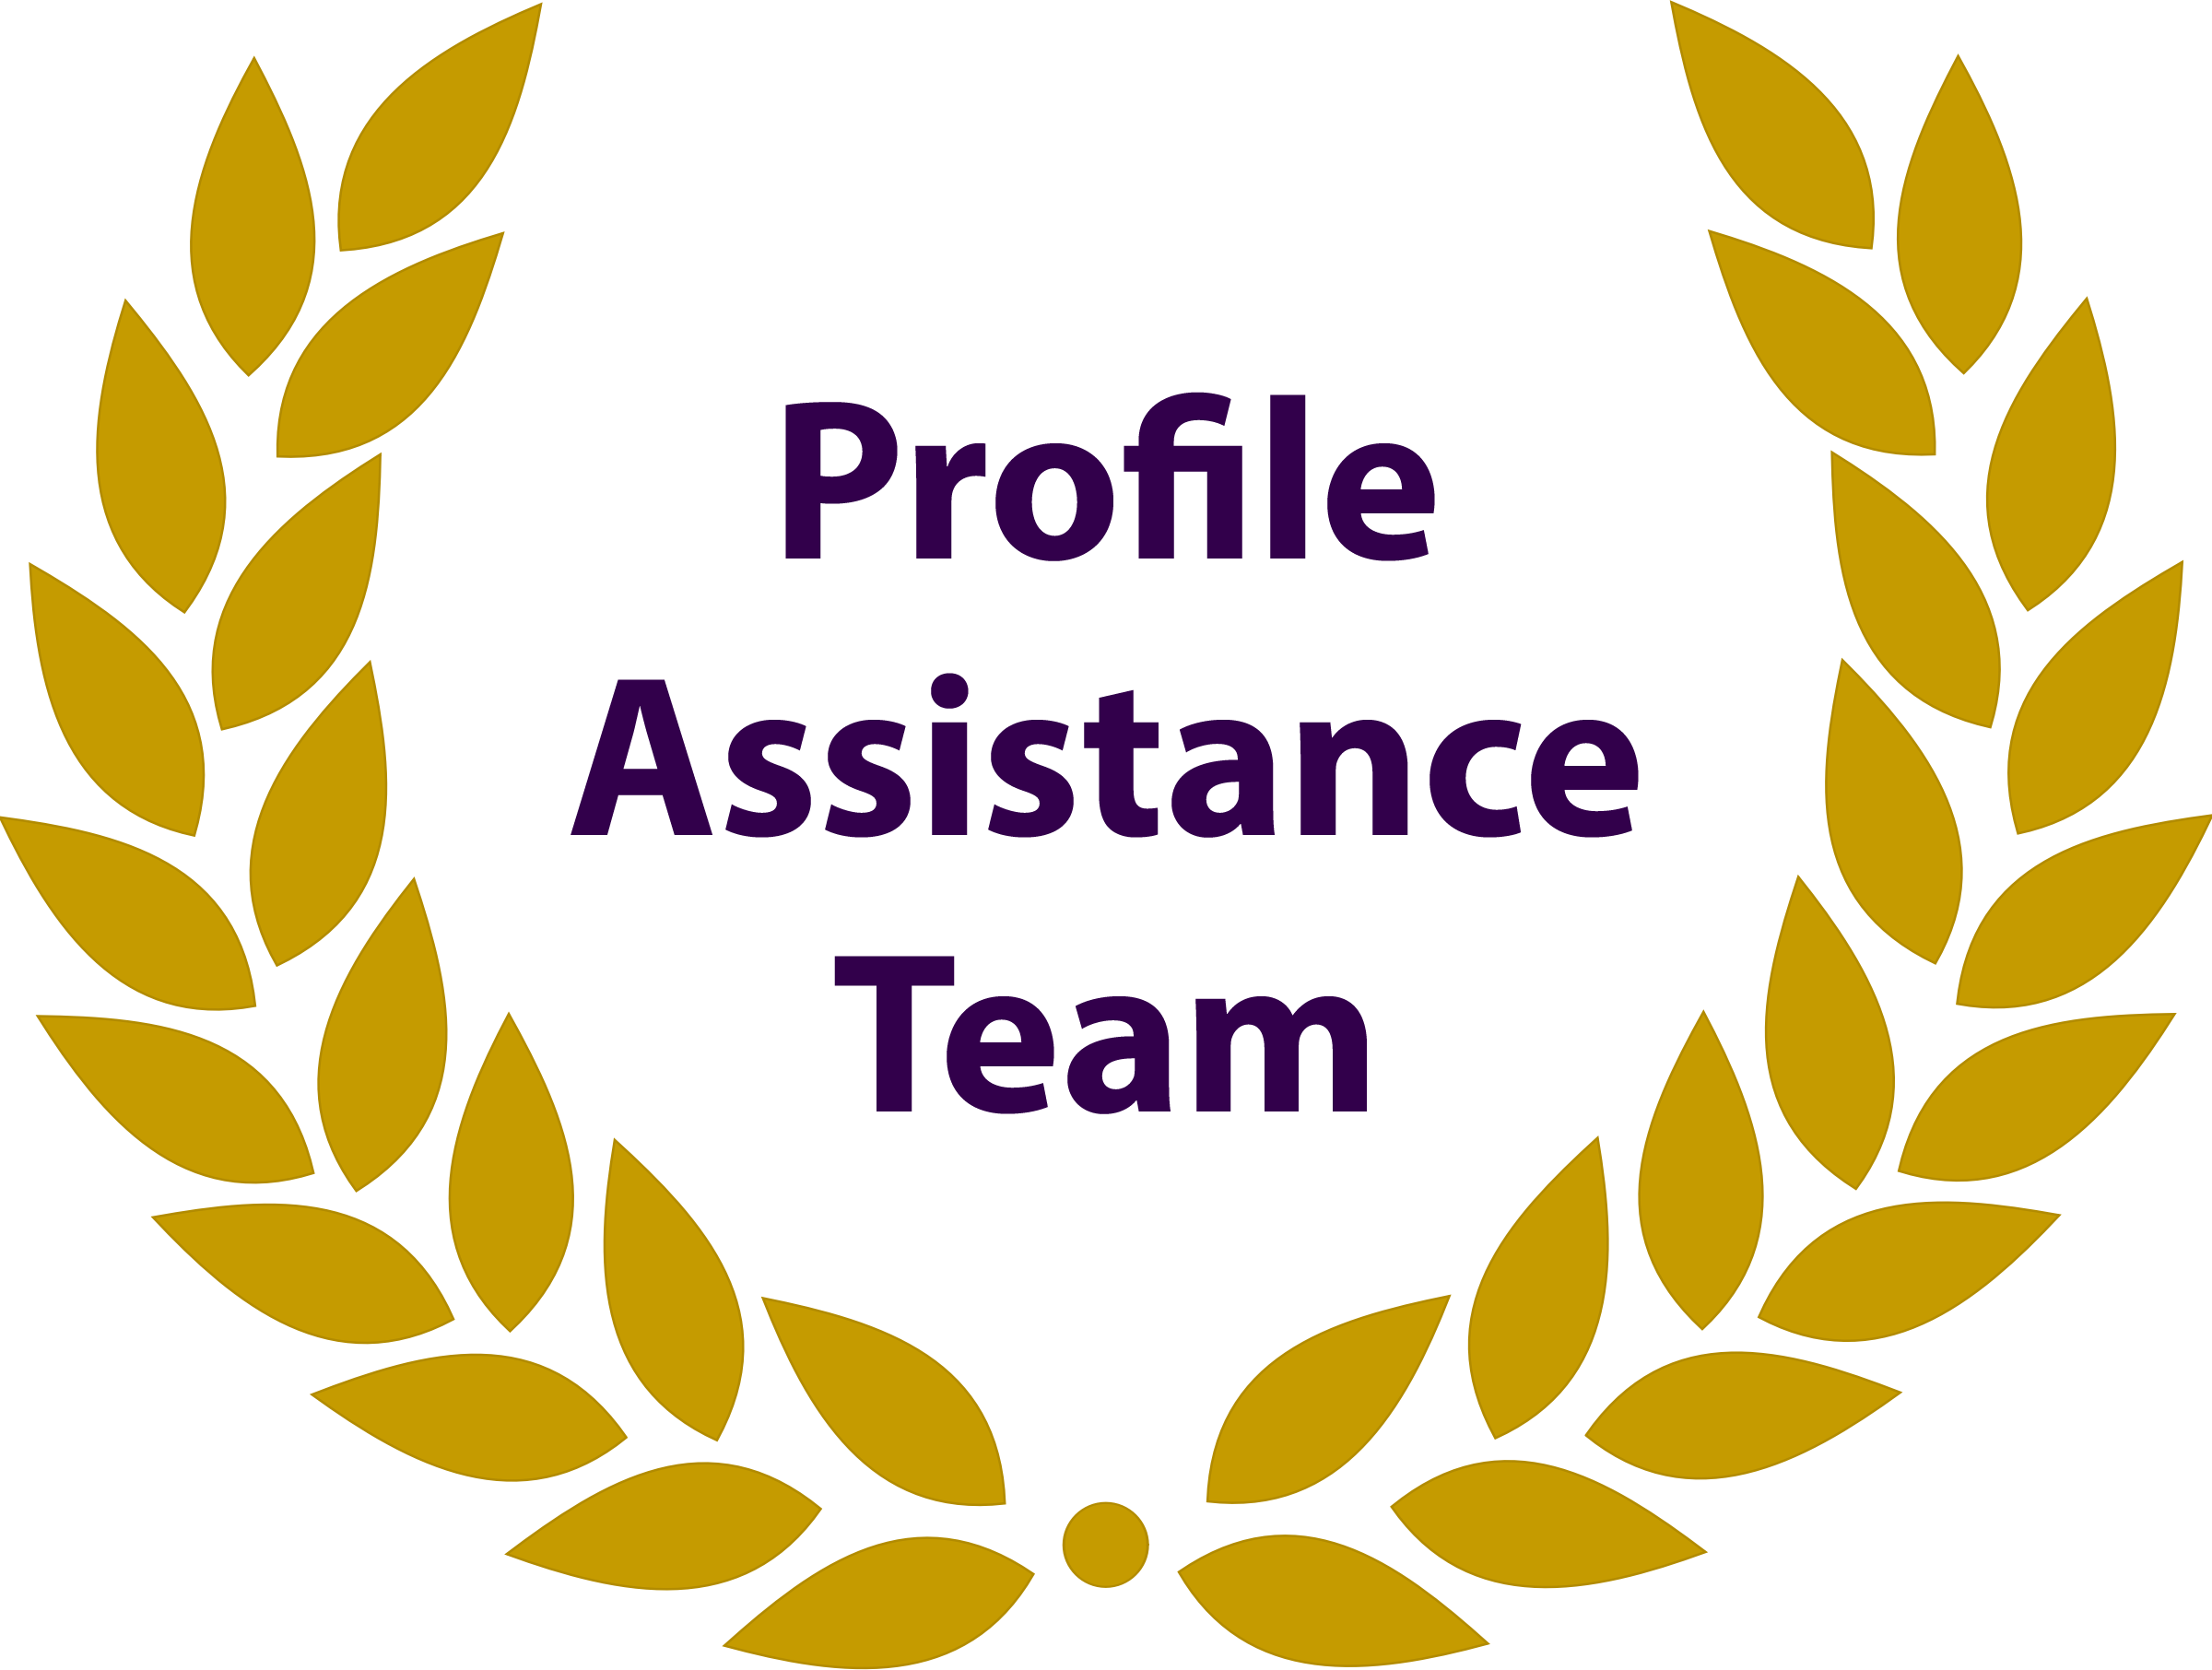 MTWS Profile Assistance Team